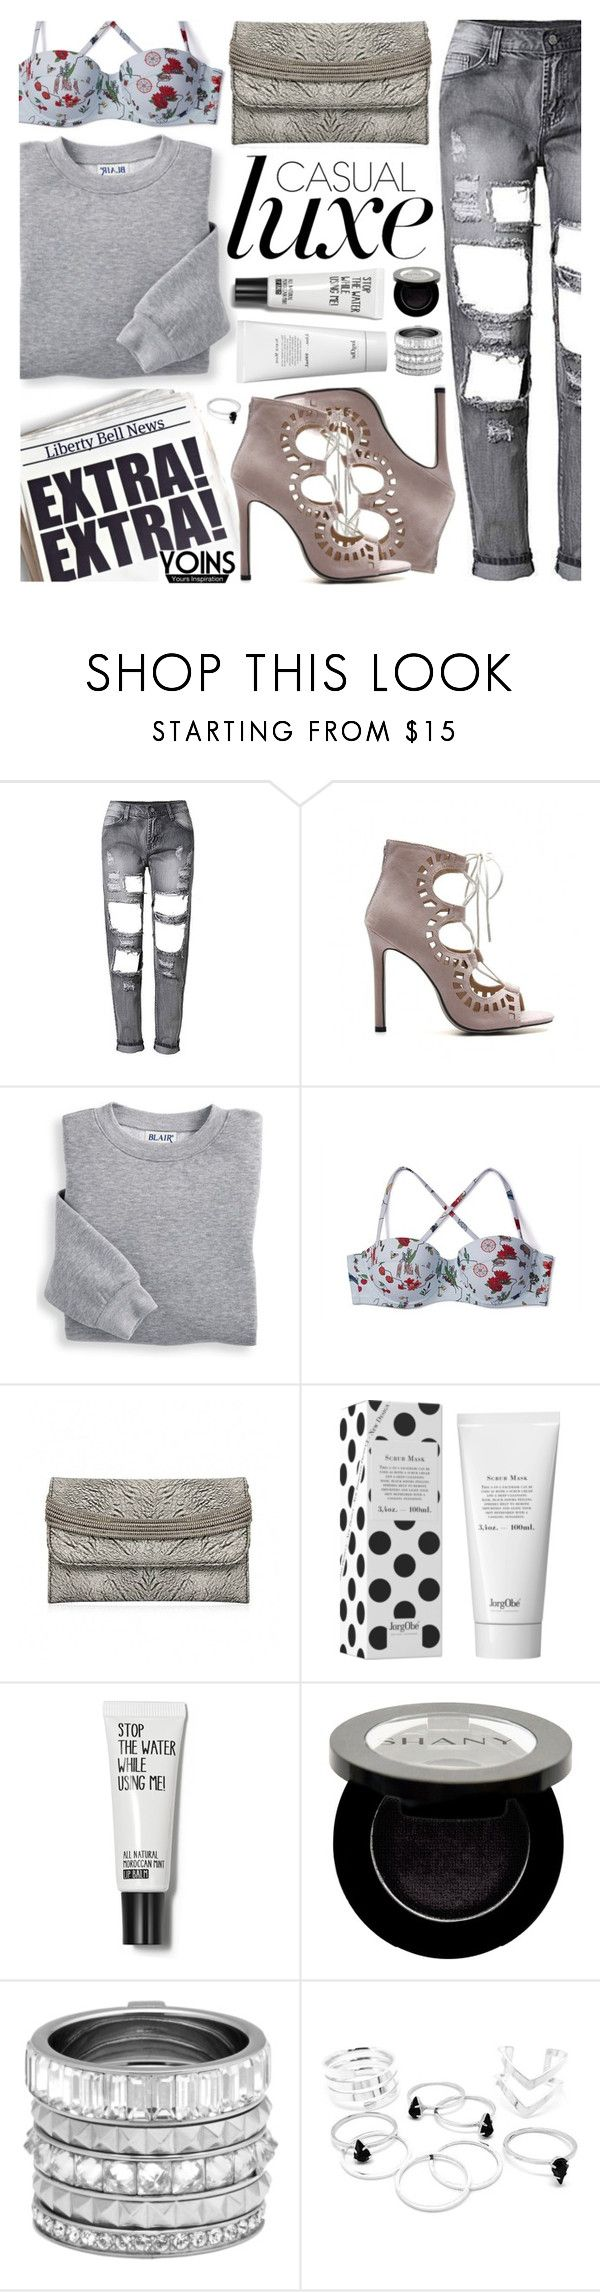 """Yoins IV/2"" by pastelneon ❤ liked on Polyvore featuring Blair, Tory Burch, Shany and Henri Bendel"